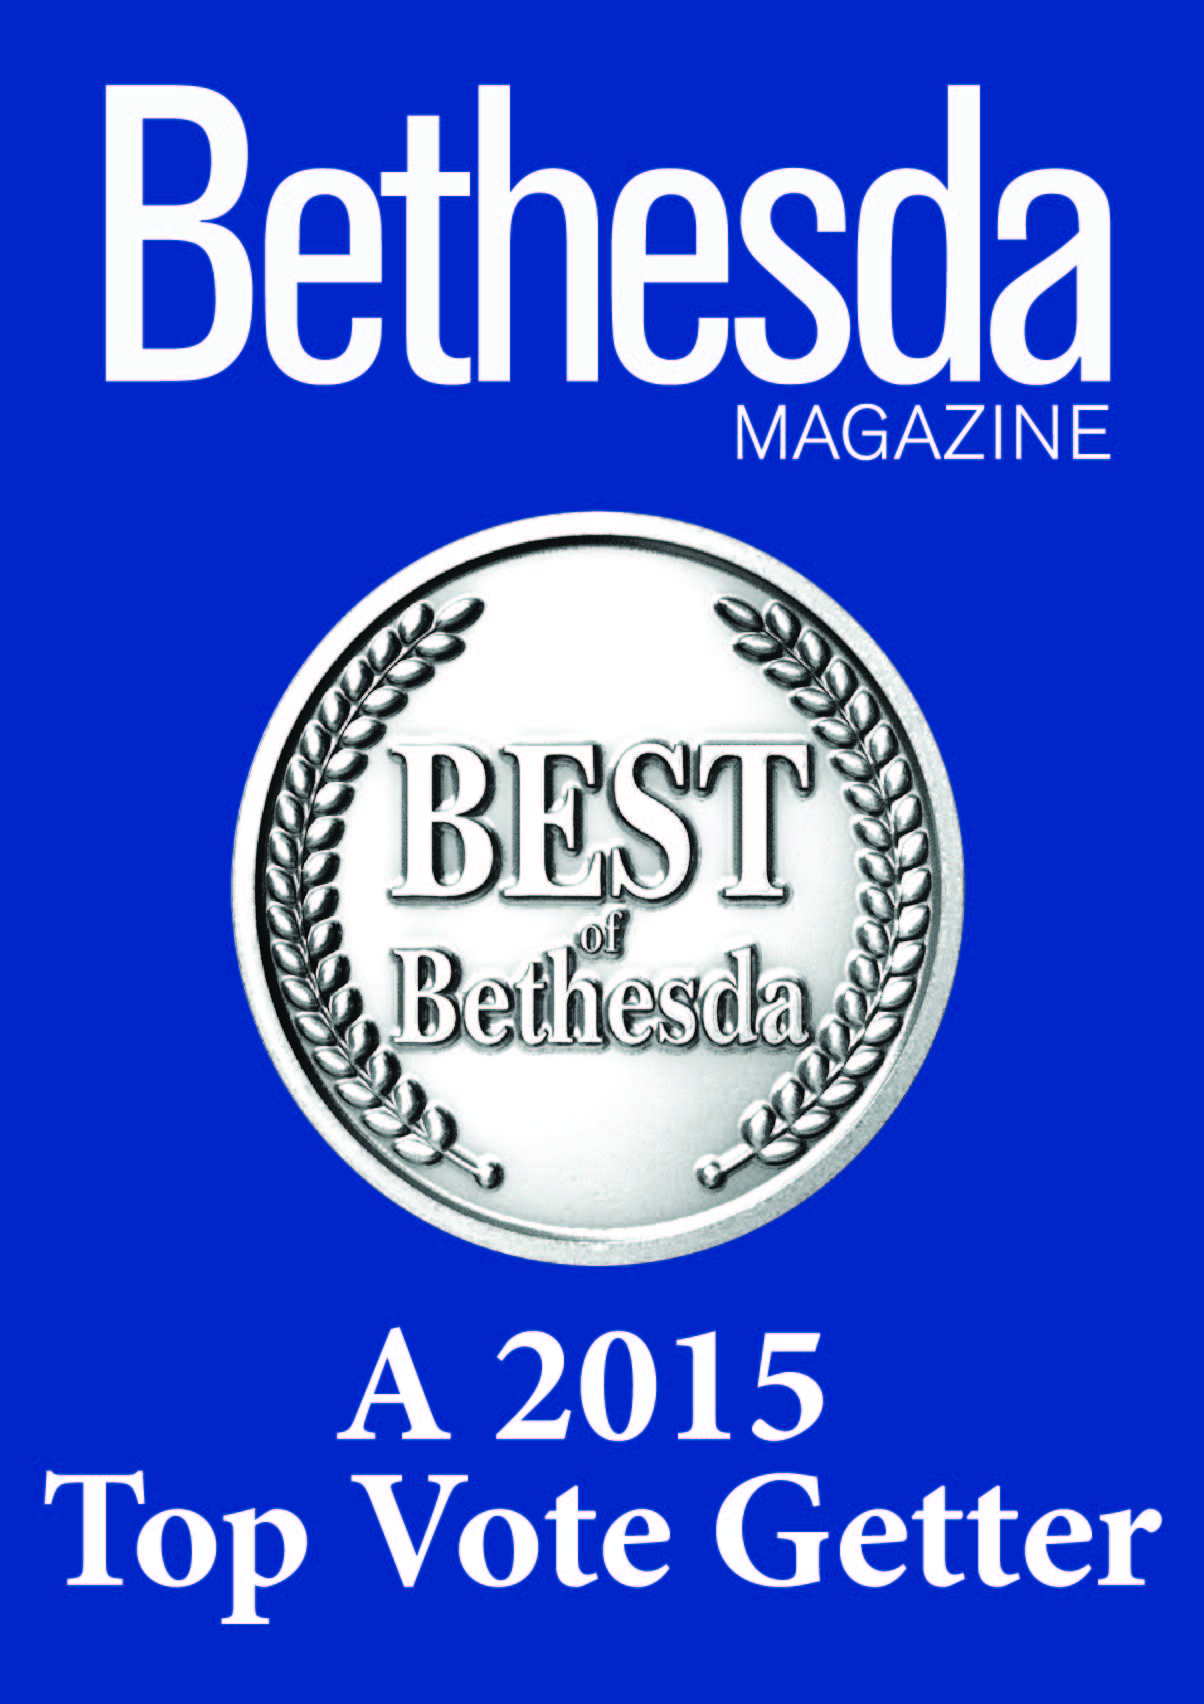 Best of Bethesda 2015 Top Vote Getter